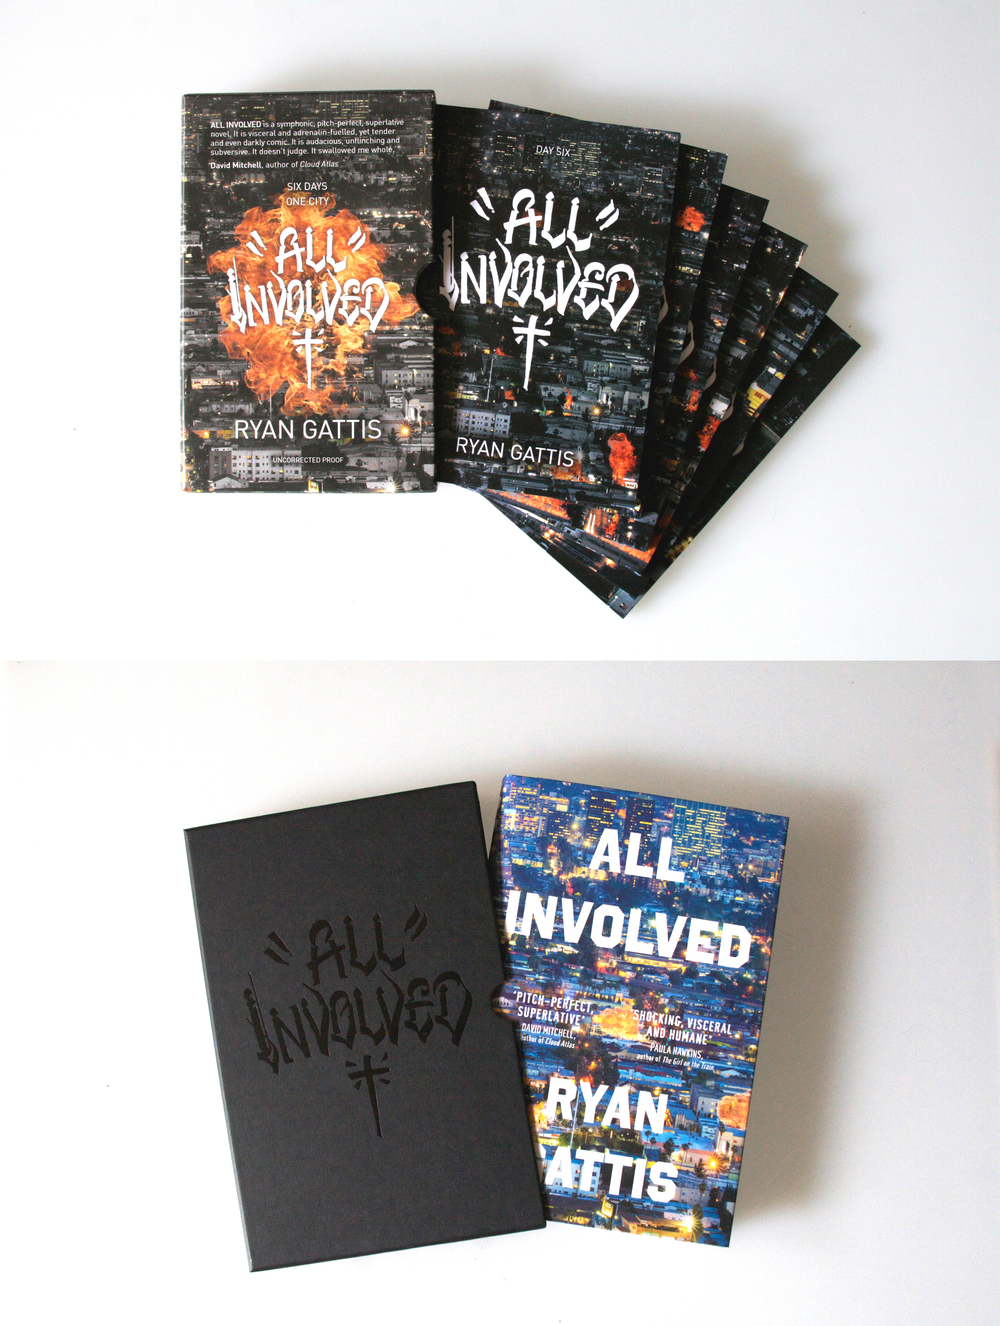 All Involved  UK Special Edition Proof & Special Edition Hardcover with Slipcase (Picador & Goldsboro Books) with font by Chaz Bojorquez, 2015.